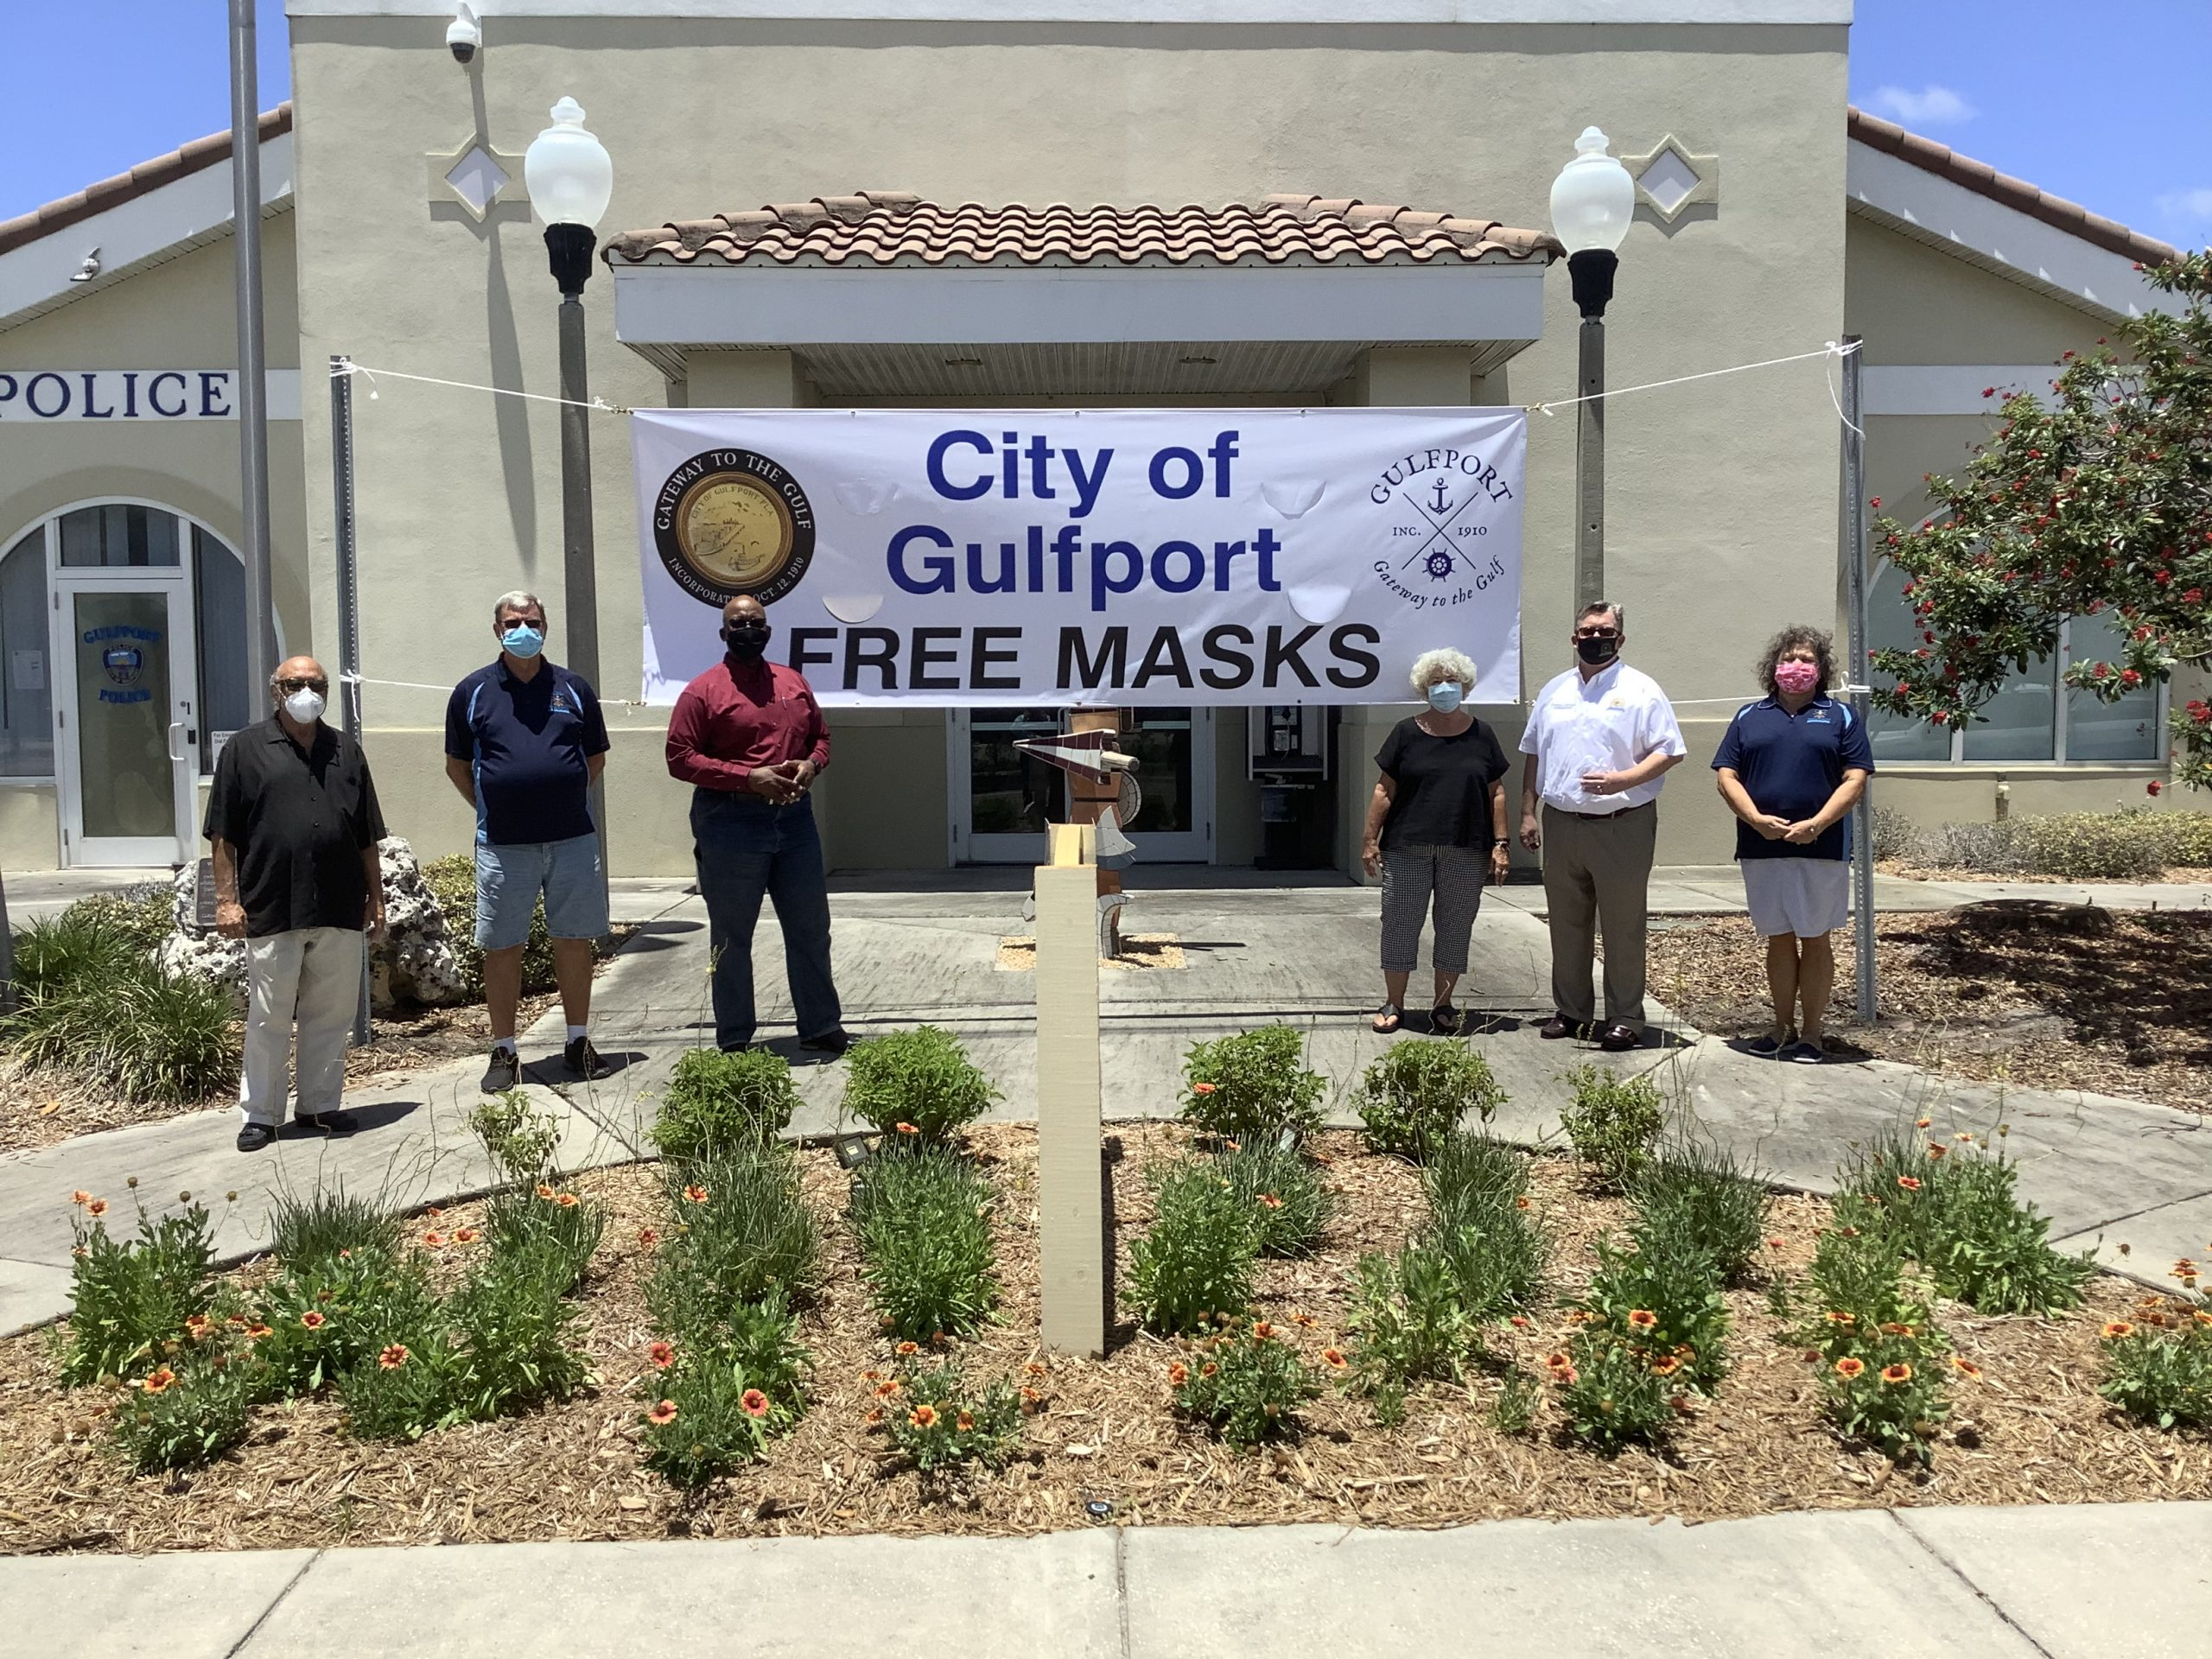 Pictured here are the City of Gulfport Vice Mayor, Michael Fridovich, City of Gulfport Councilmember, Paul Ray, Pinellas County Commissioner, Kenneth Welch, City of Gulfport Councilmember, April Thanos, Pinellas County Commissioner, Charlie Justice, and City of Gulfport Councilmember, Christine Brown.